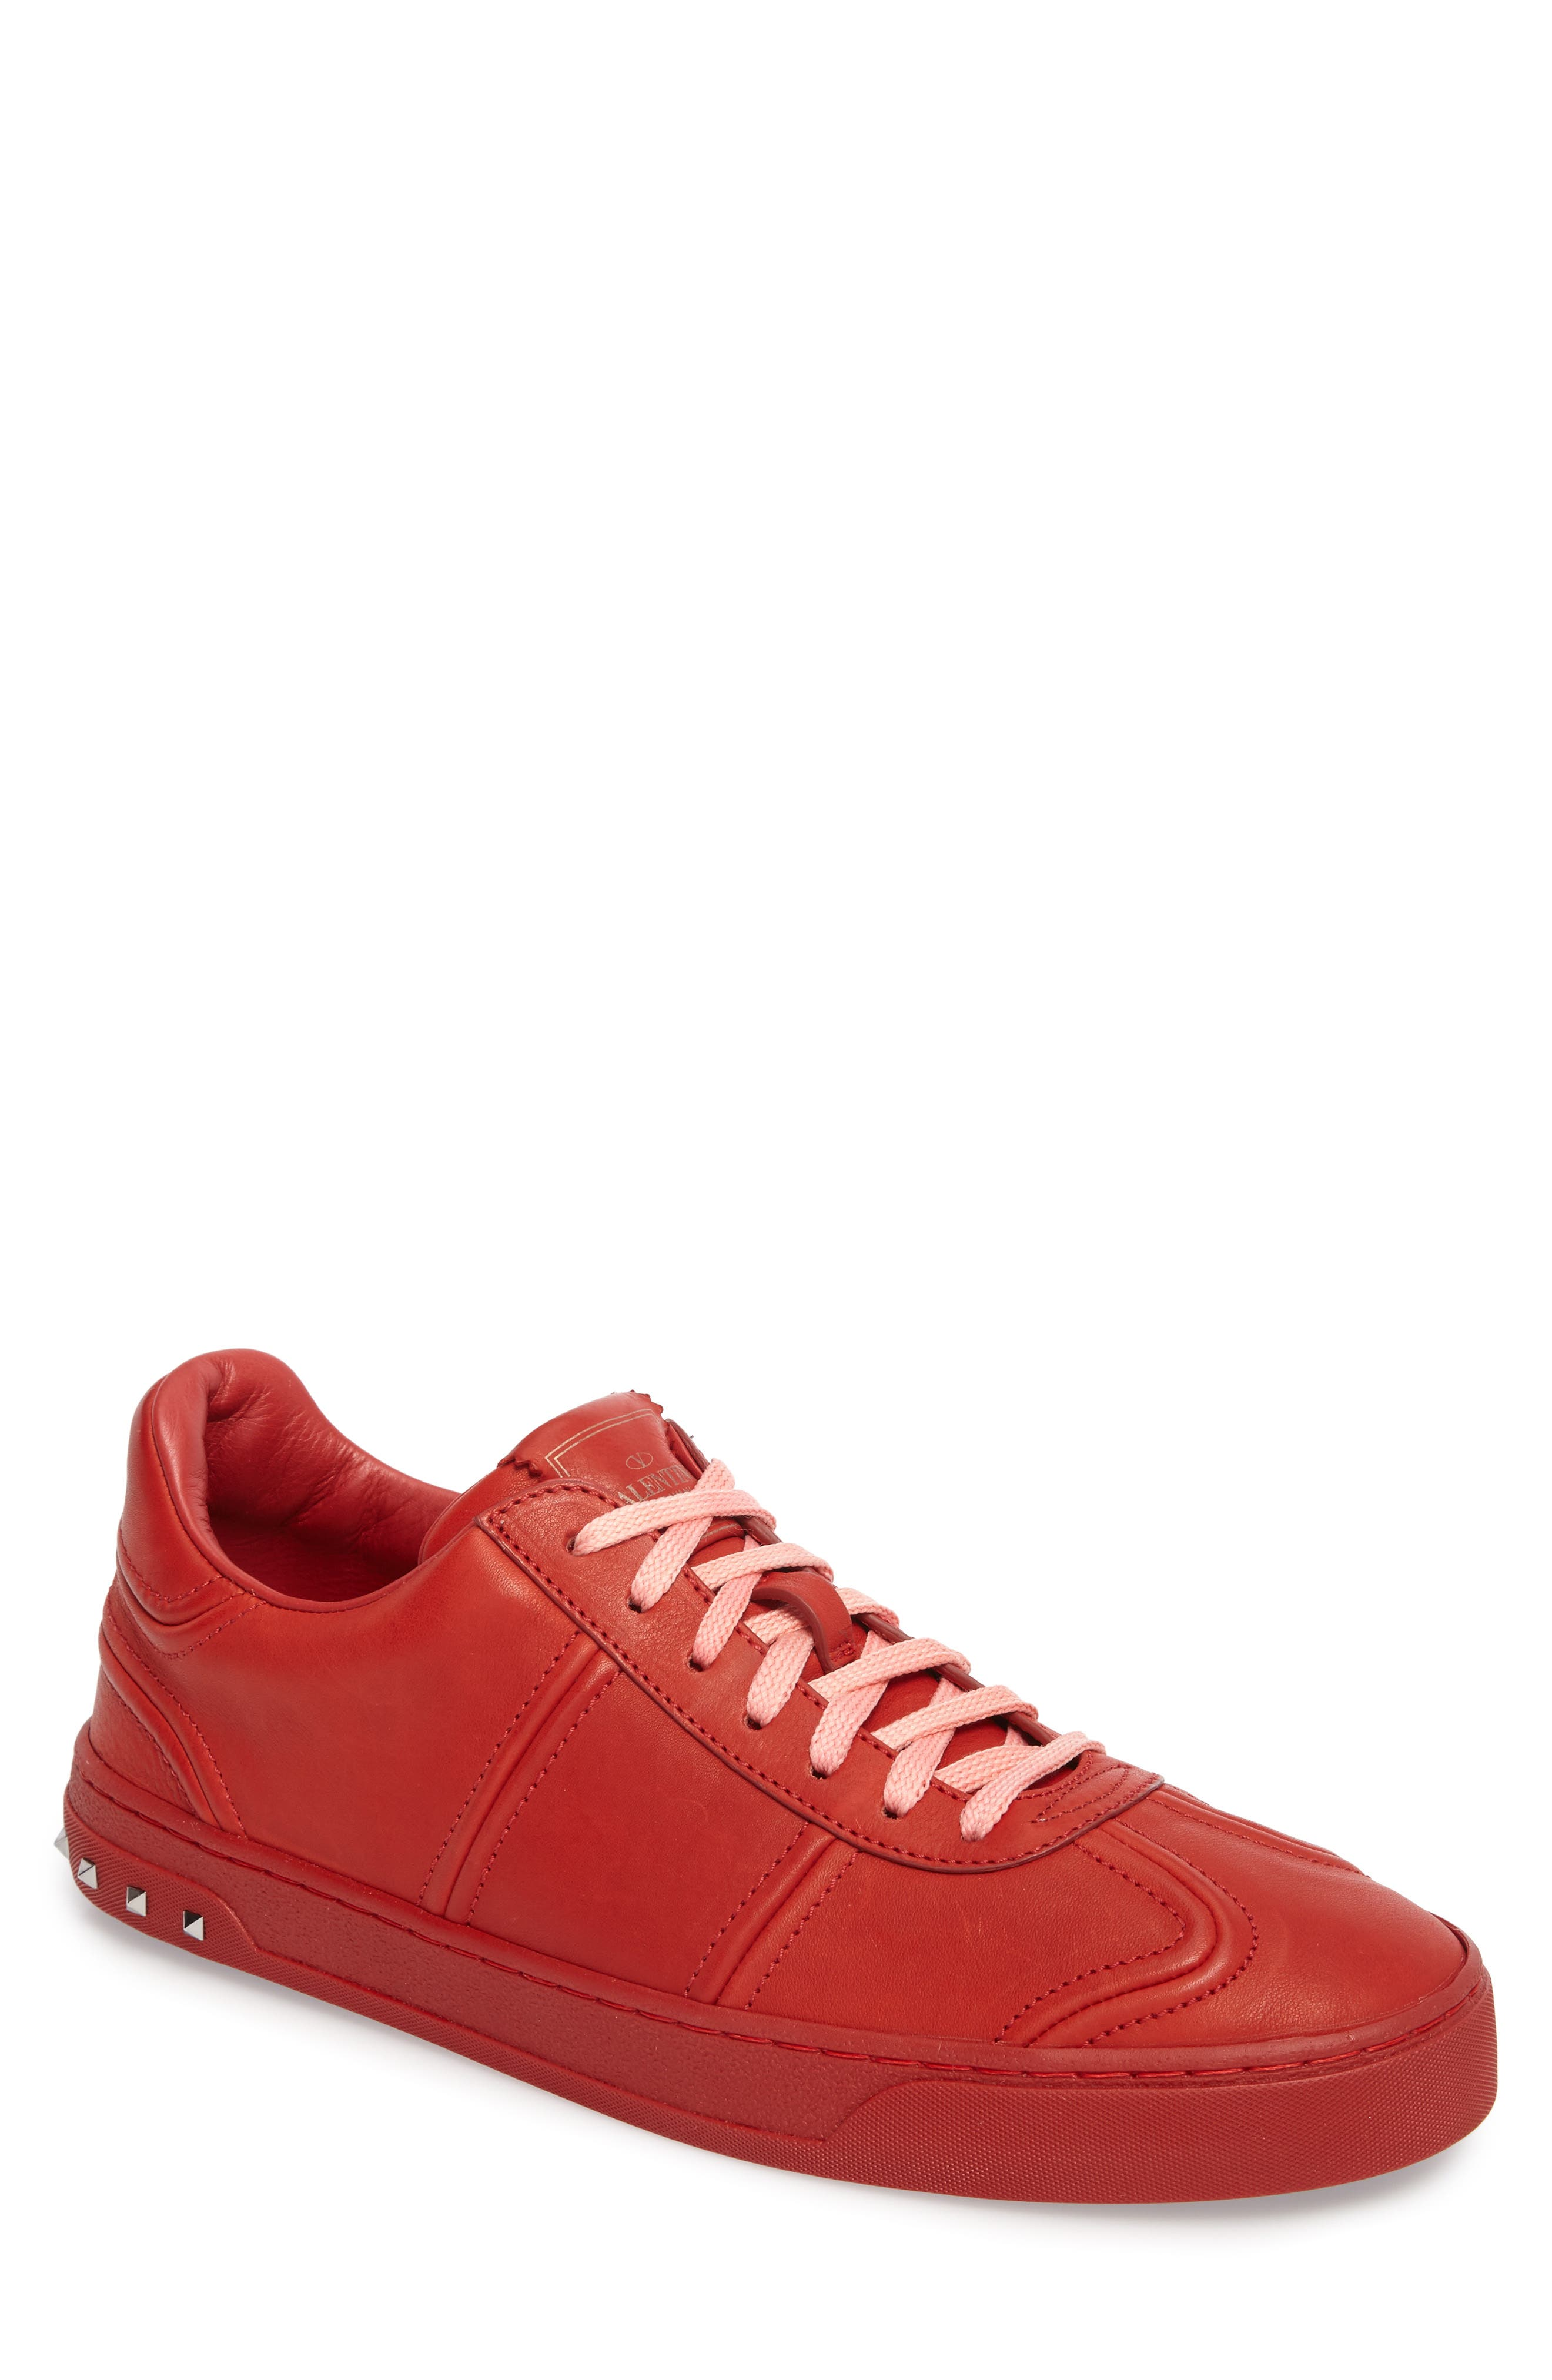 Fly Crew Sneaker,                         Main,                         color, Rosso